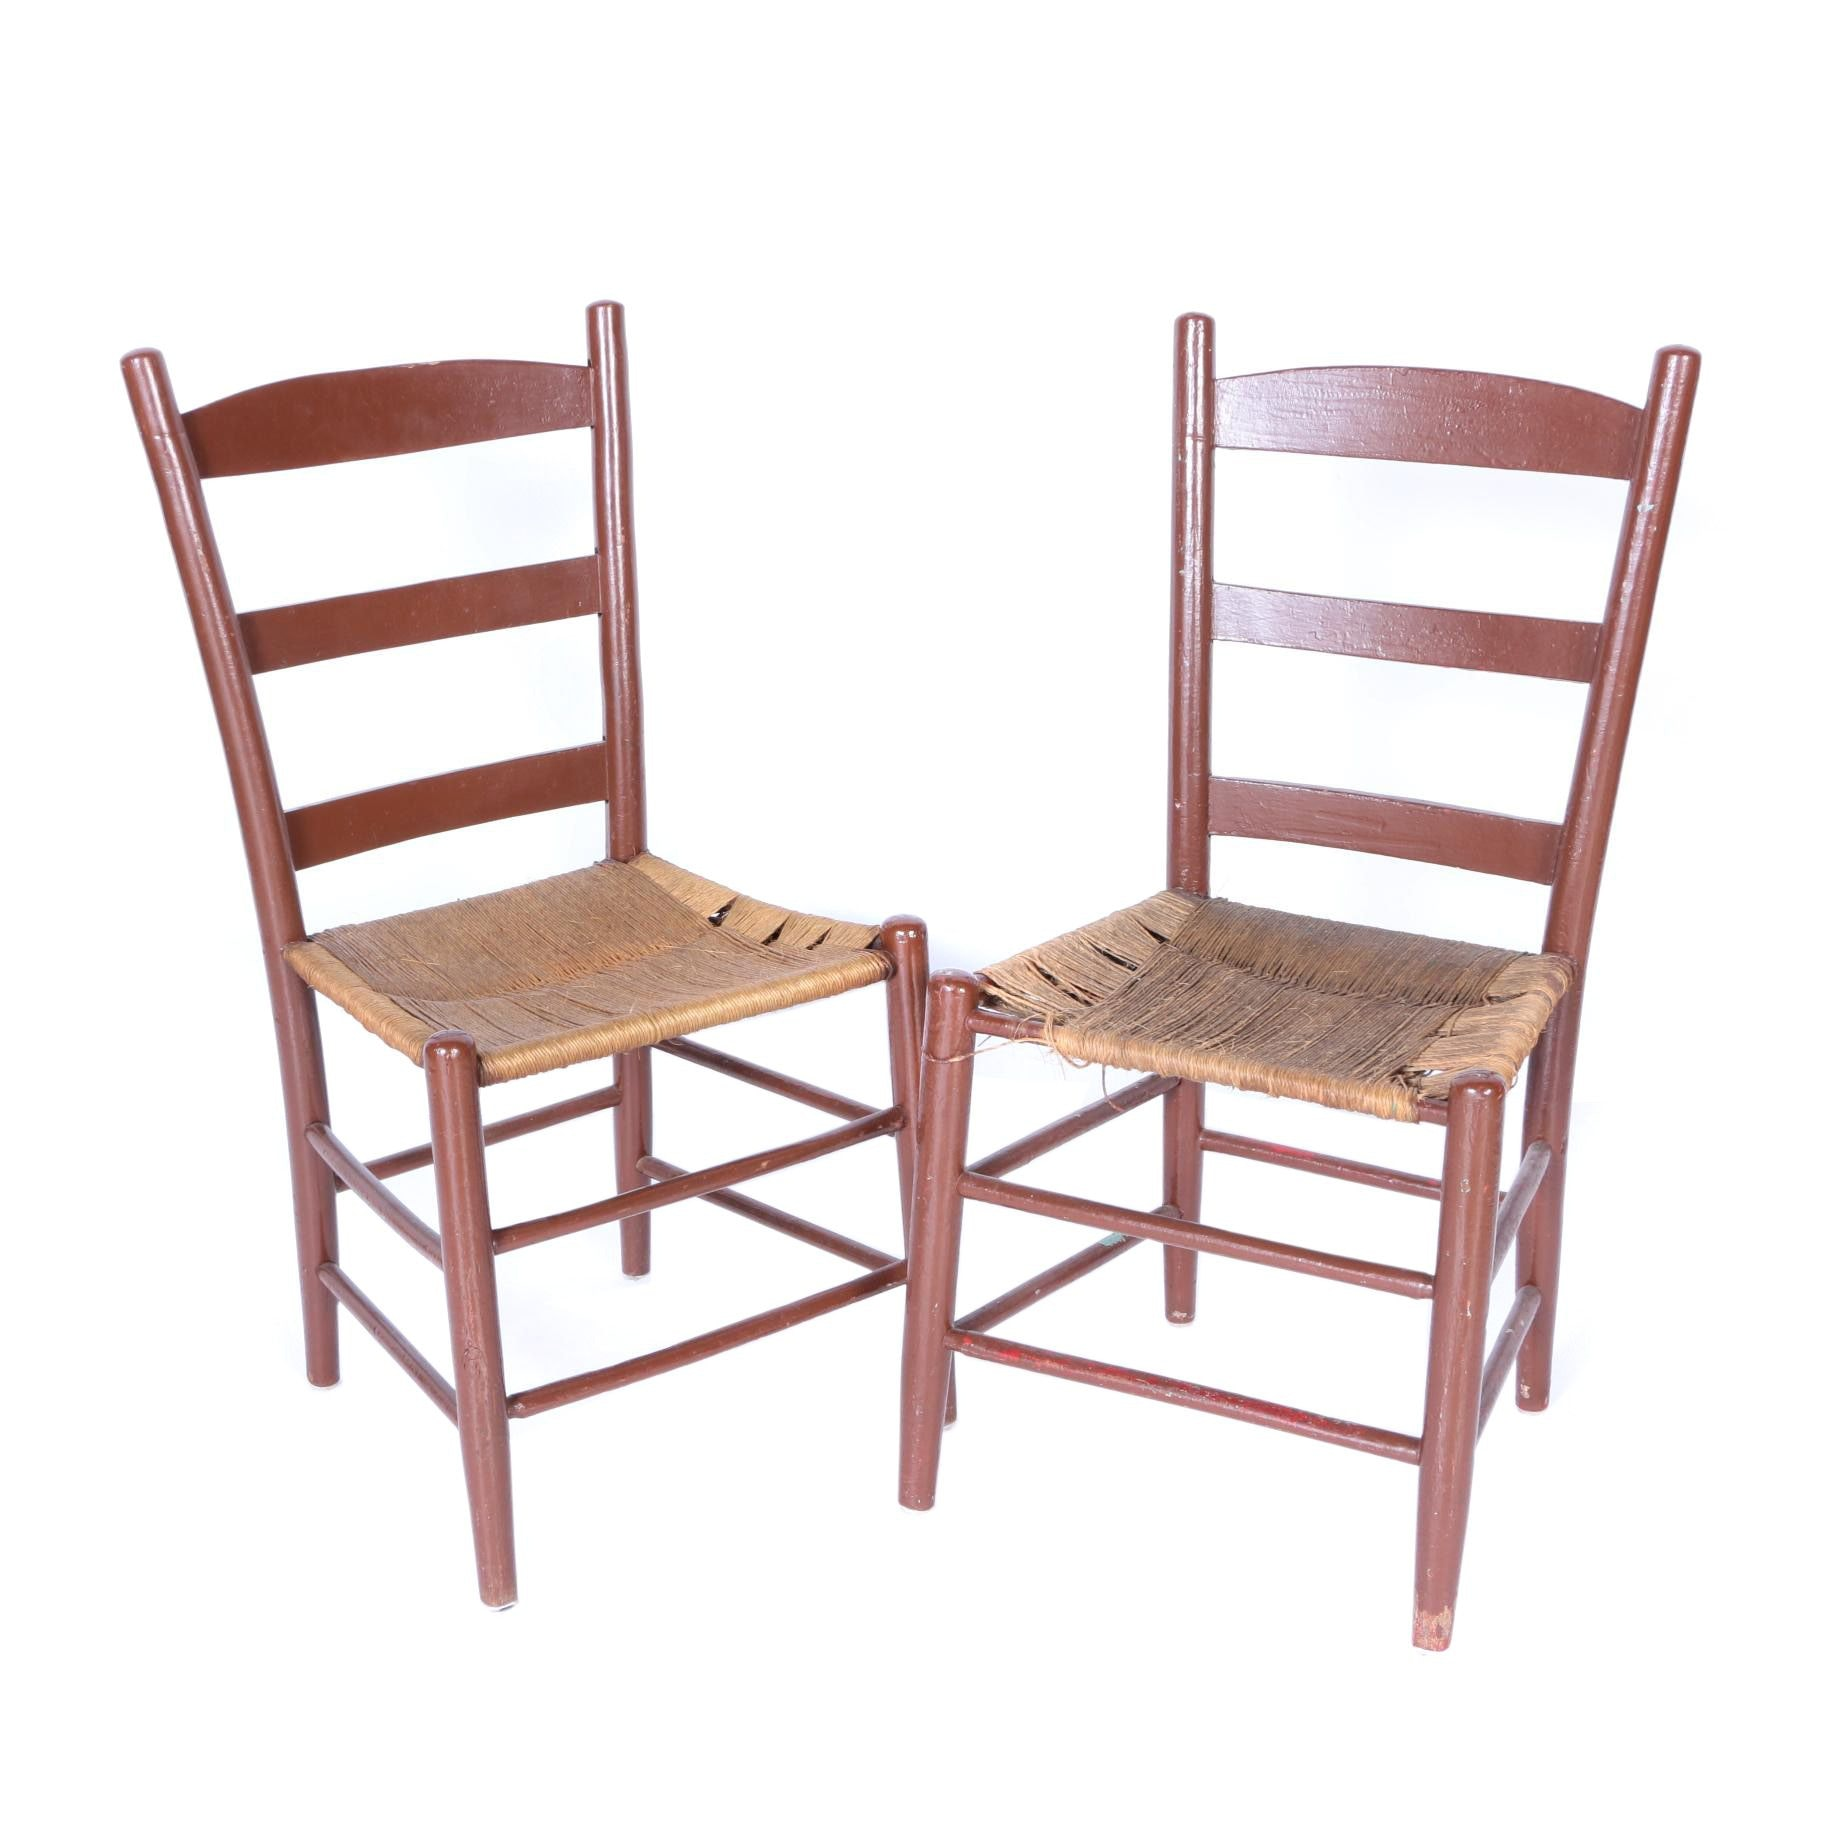 Vintage Ladder Back Chairs With Woven Seats ...